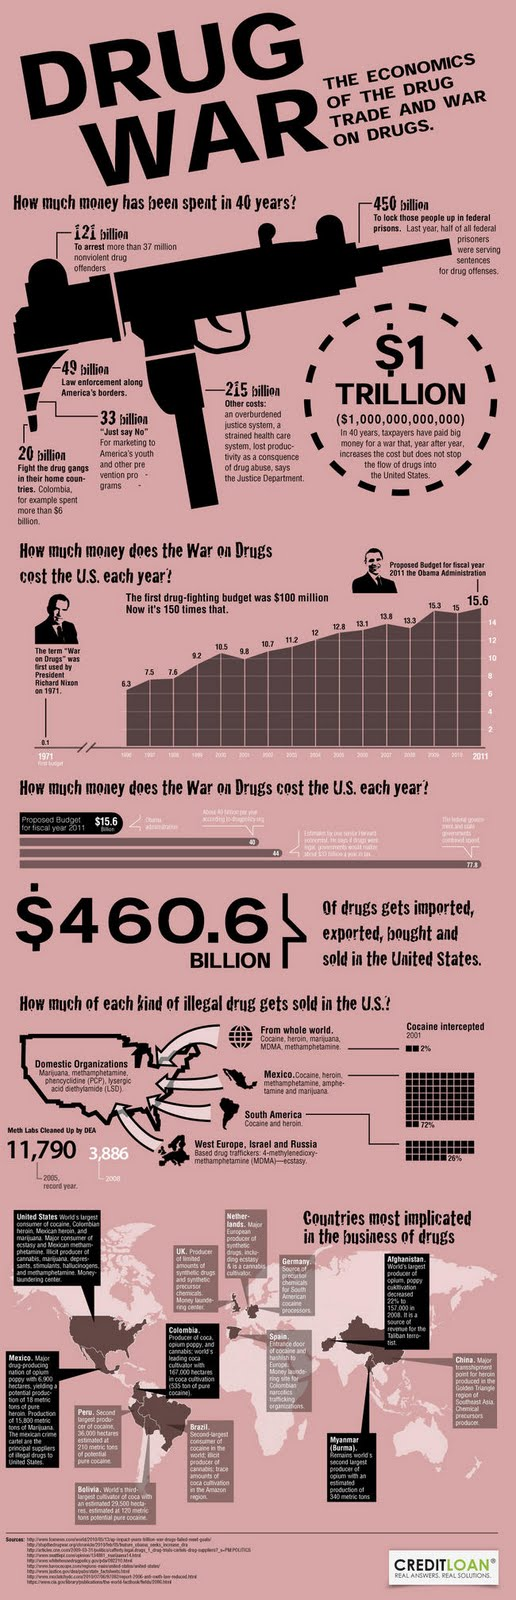 drug-wars-infographic